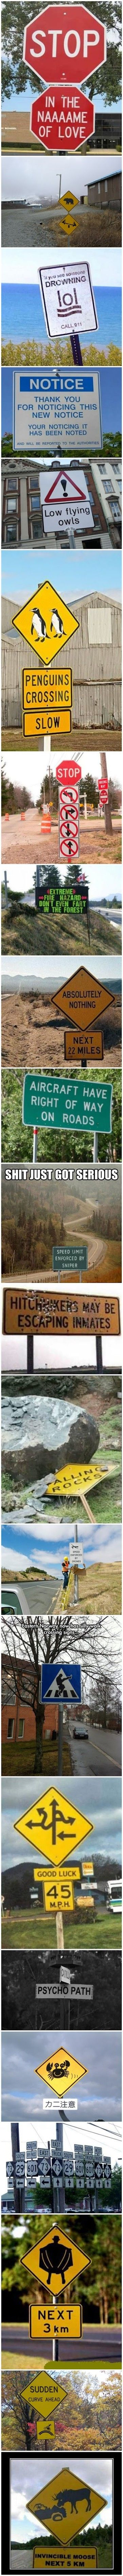 Hilarious Funny Pictures That Will Make You Smile Funny - 34 ridiculous signs will make question humanity